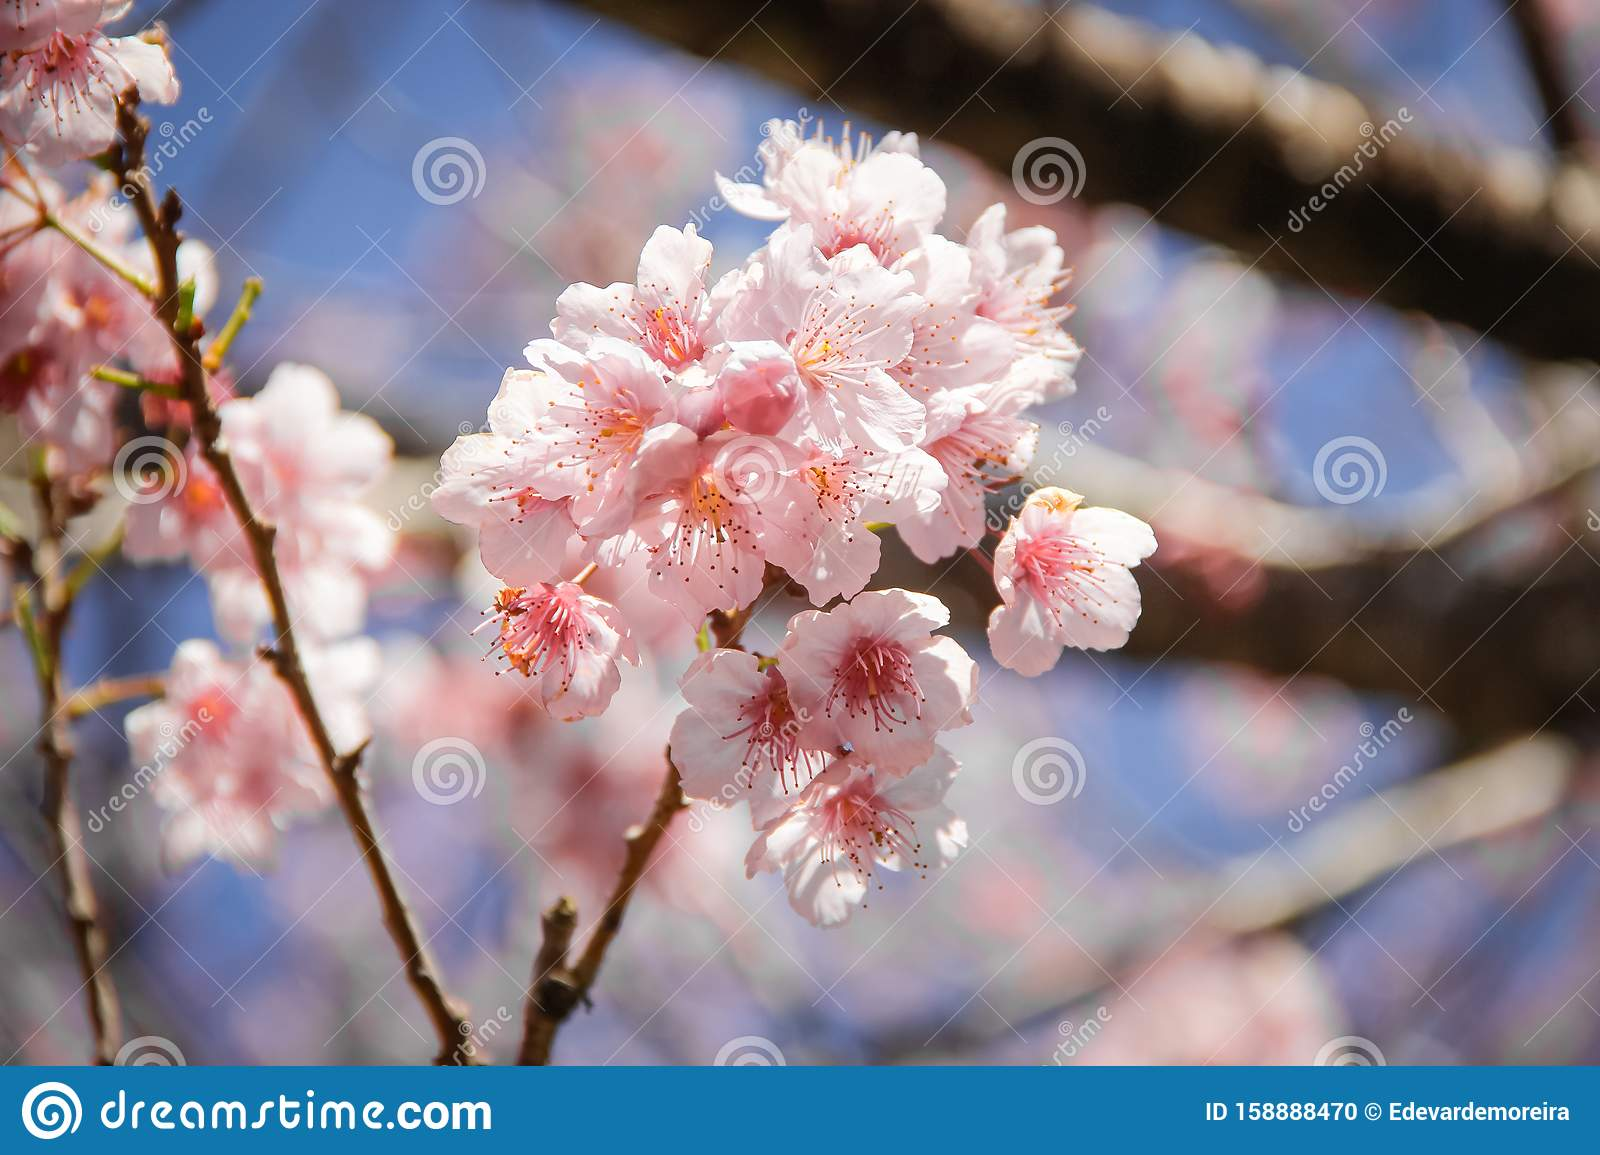 A branch of Cherry tree